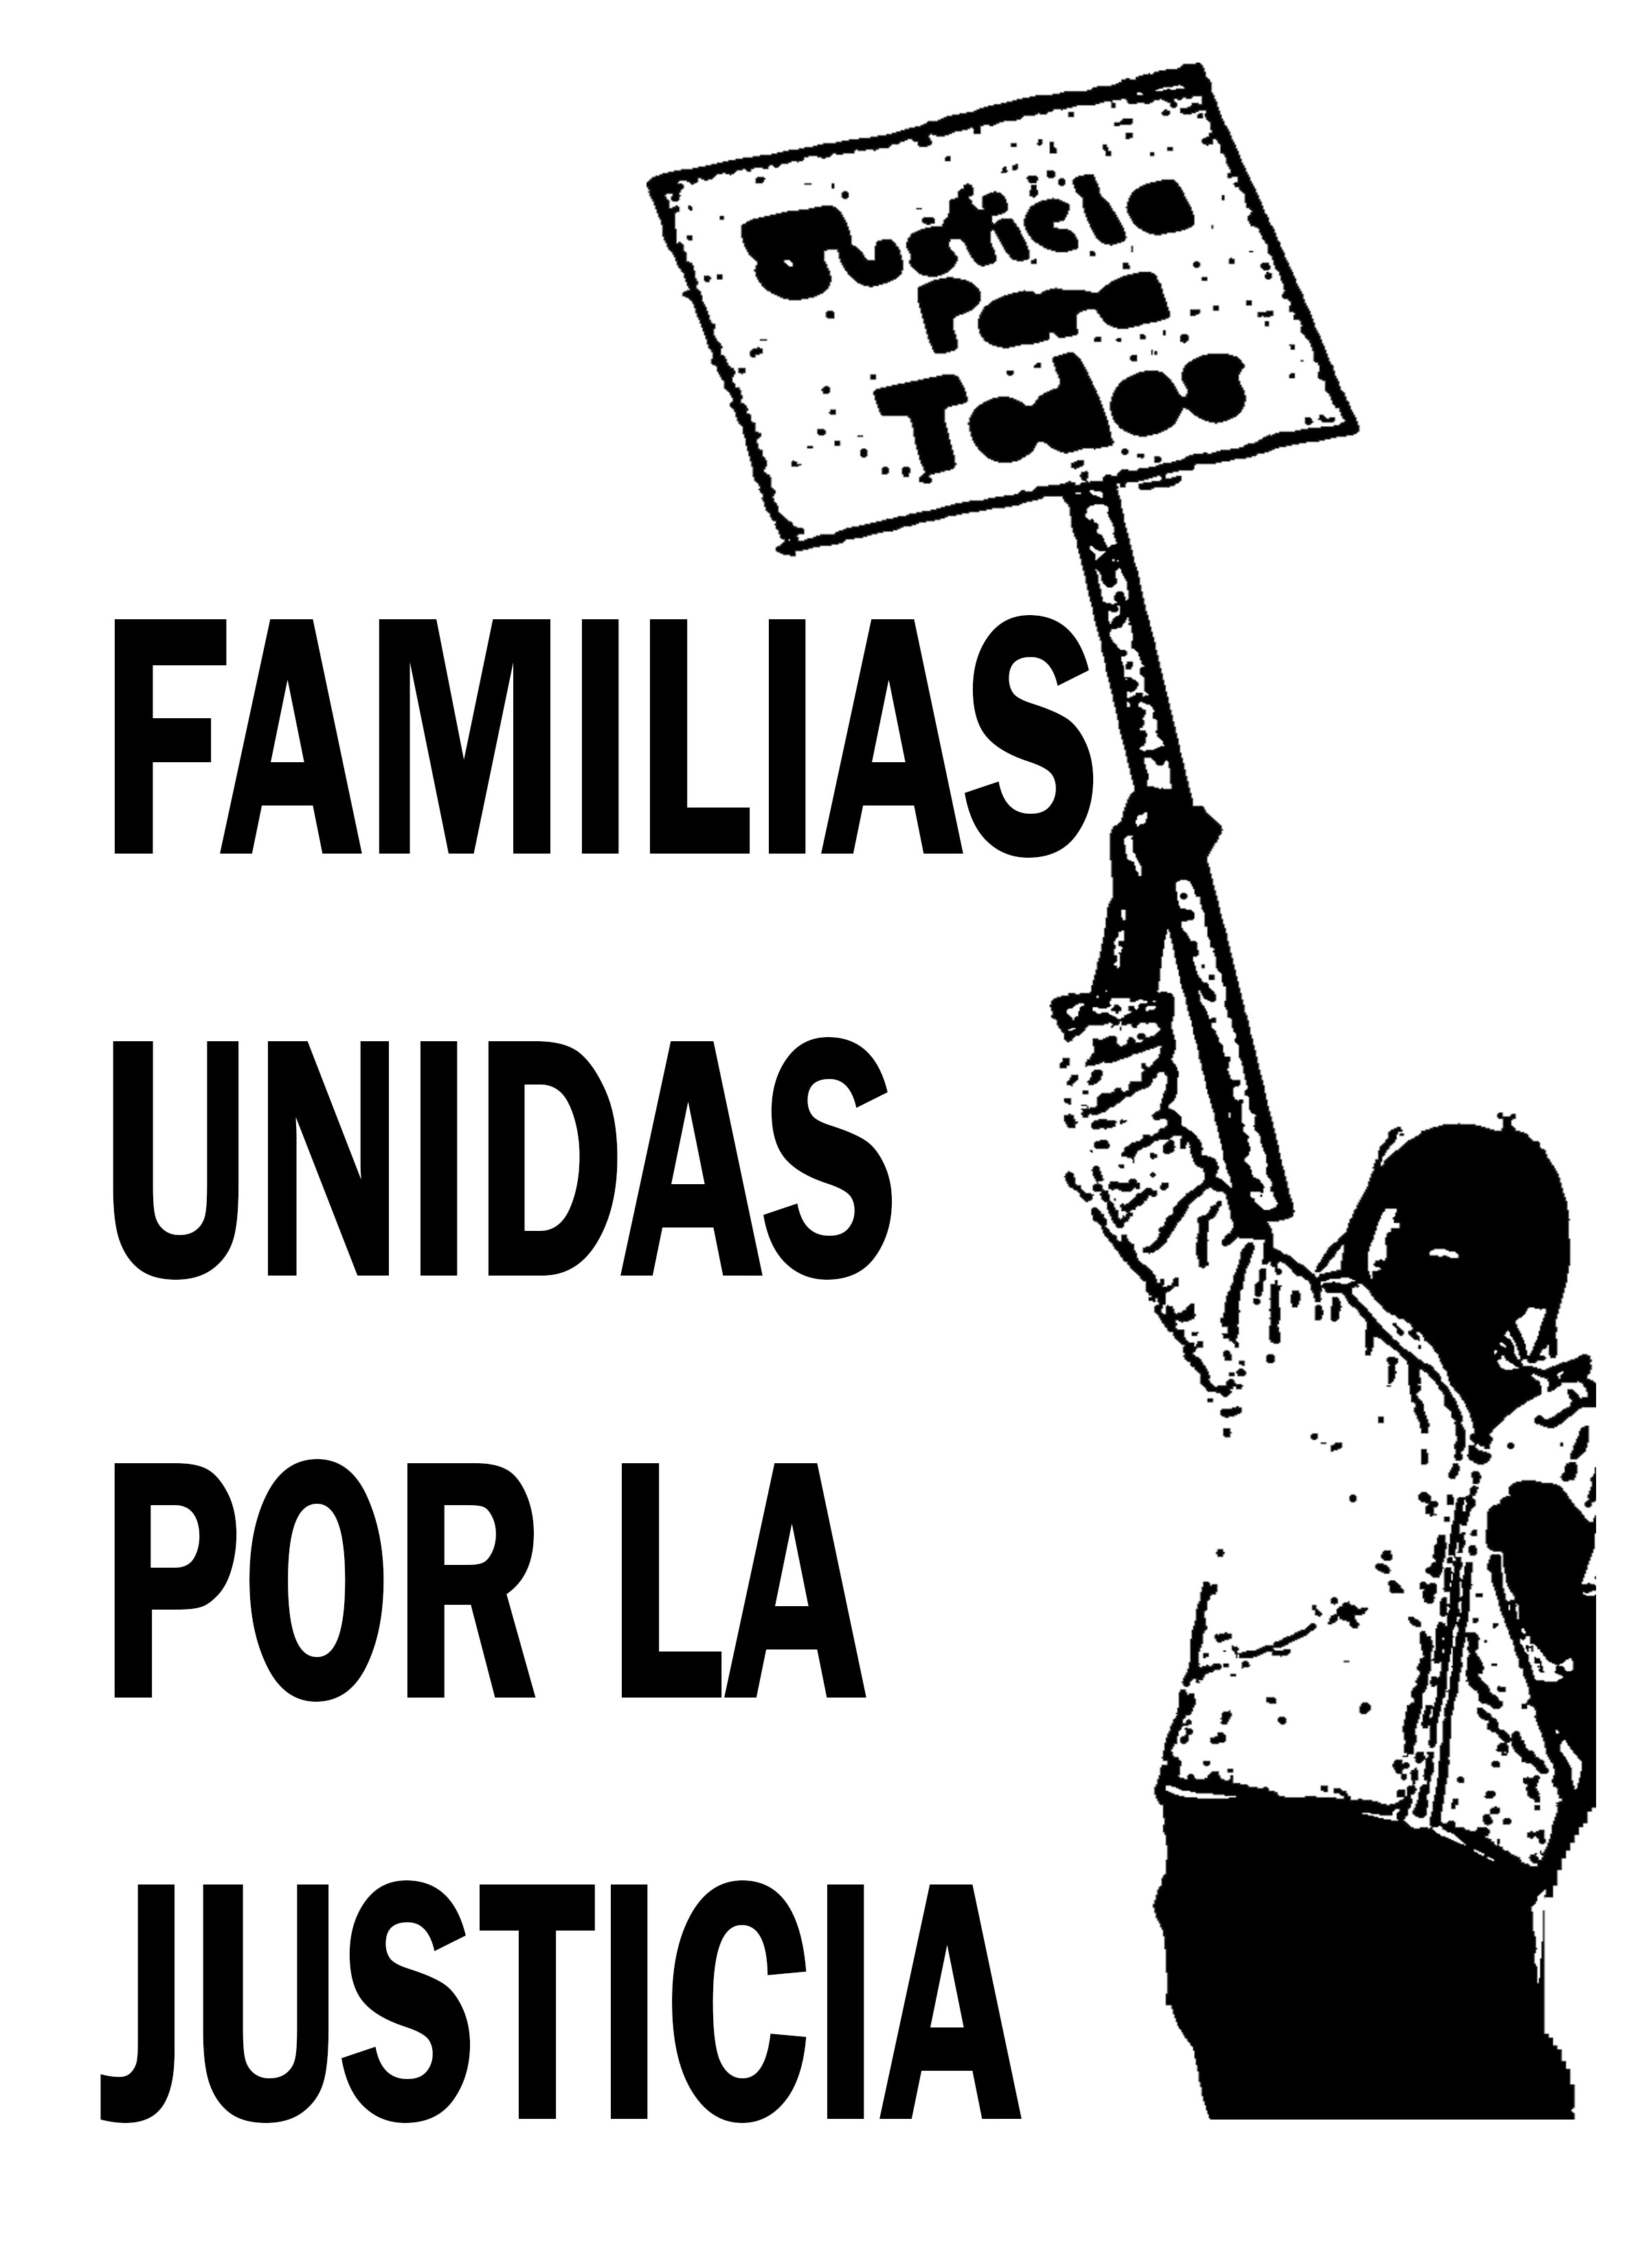 Caption: Familias Unidas por la Justicia